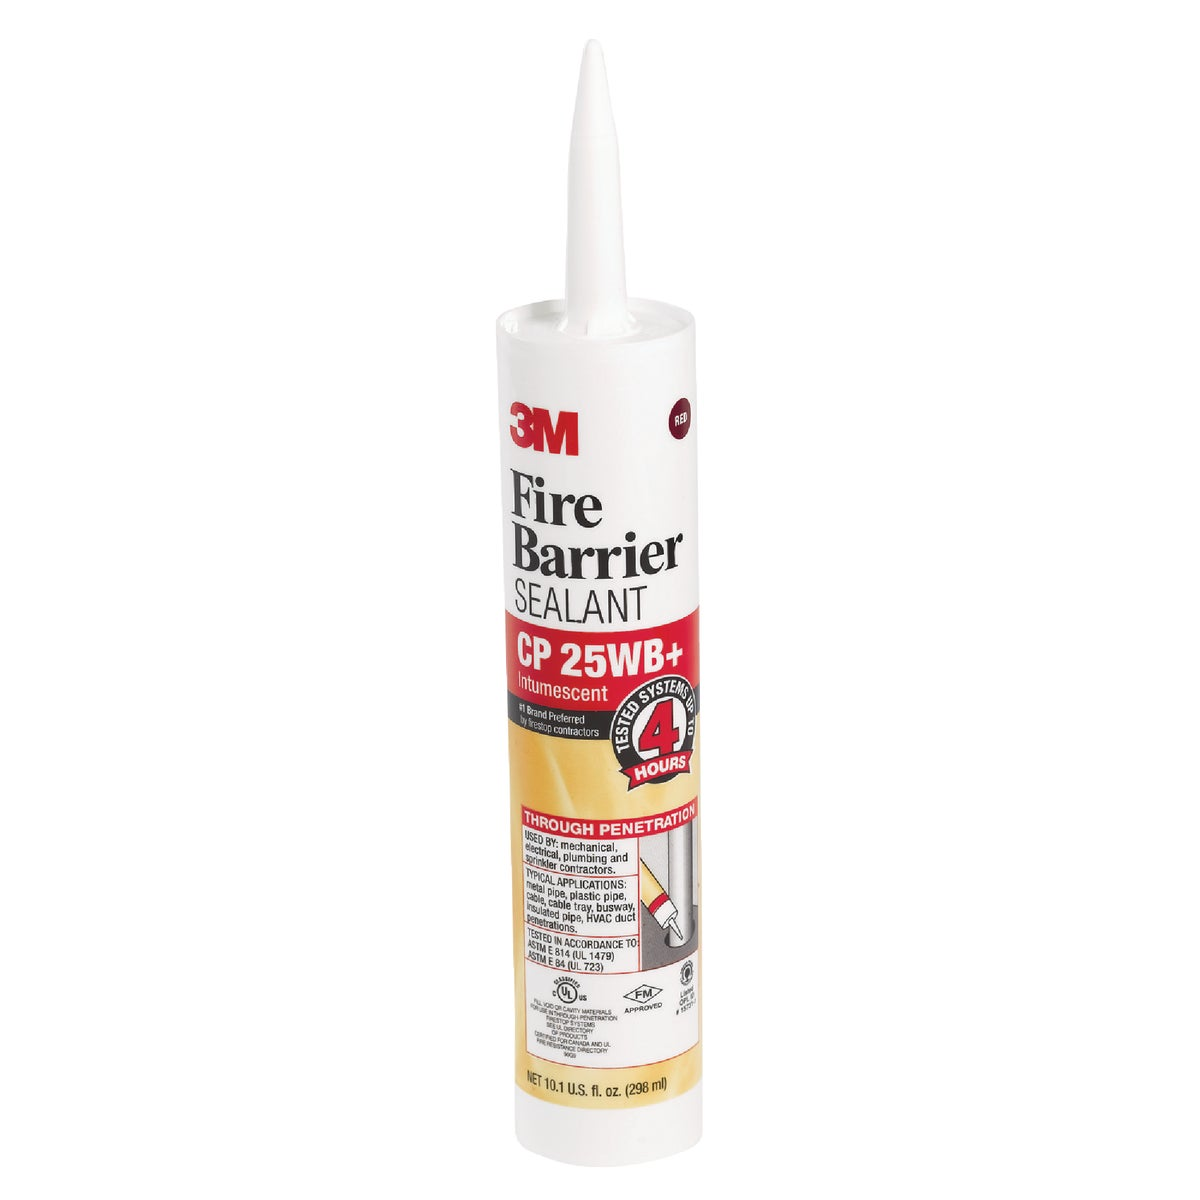 RED FIRE BARRIER SEALANT